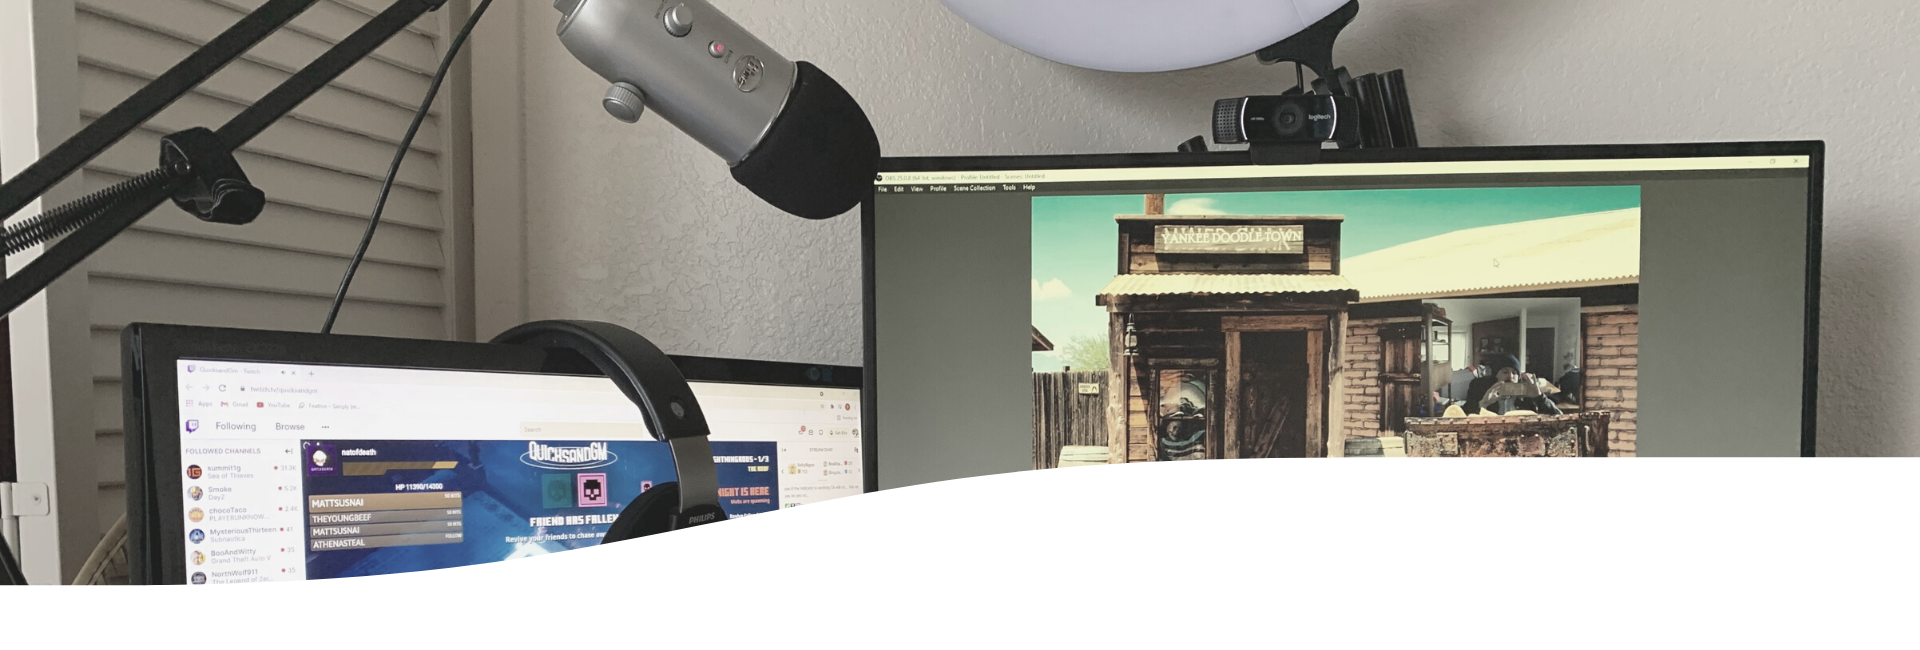 Two Monitors setup for streaming with microphone